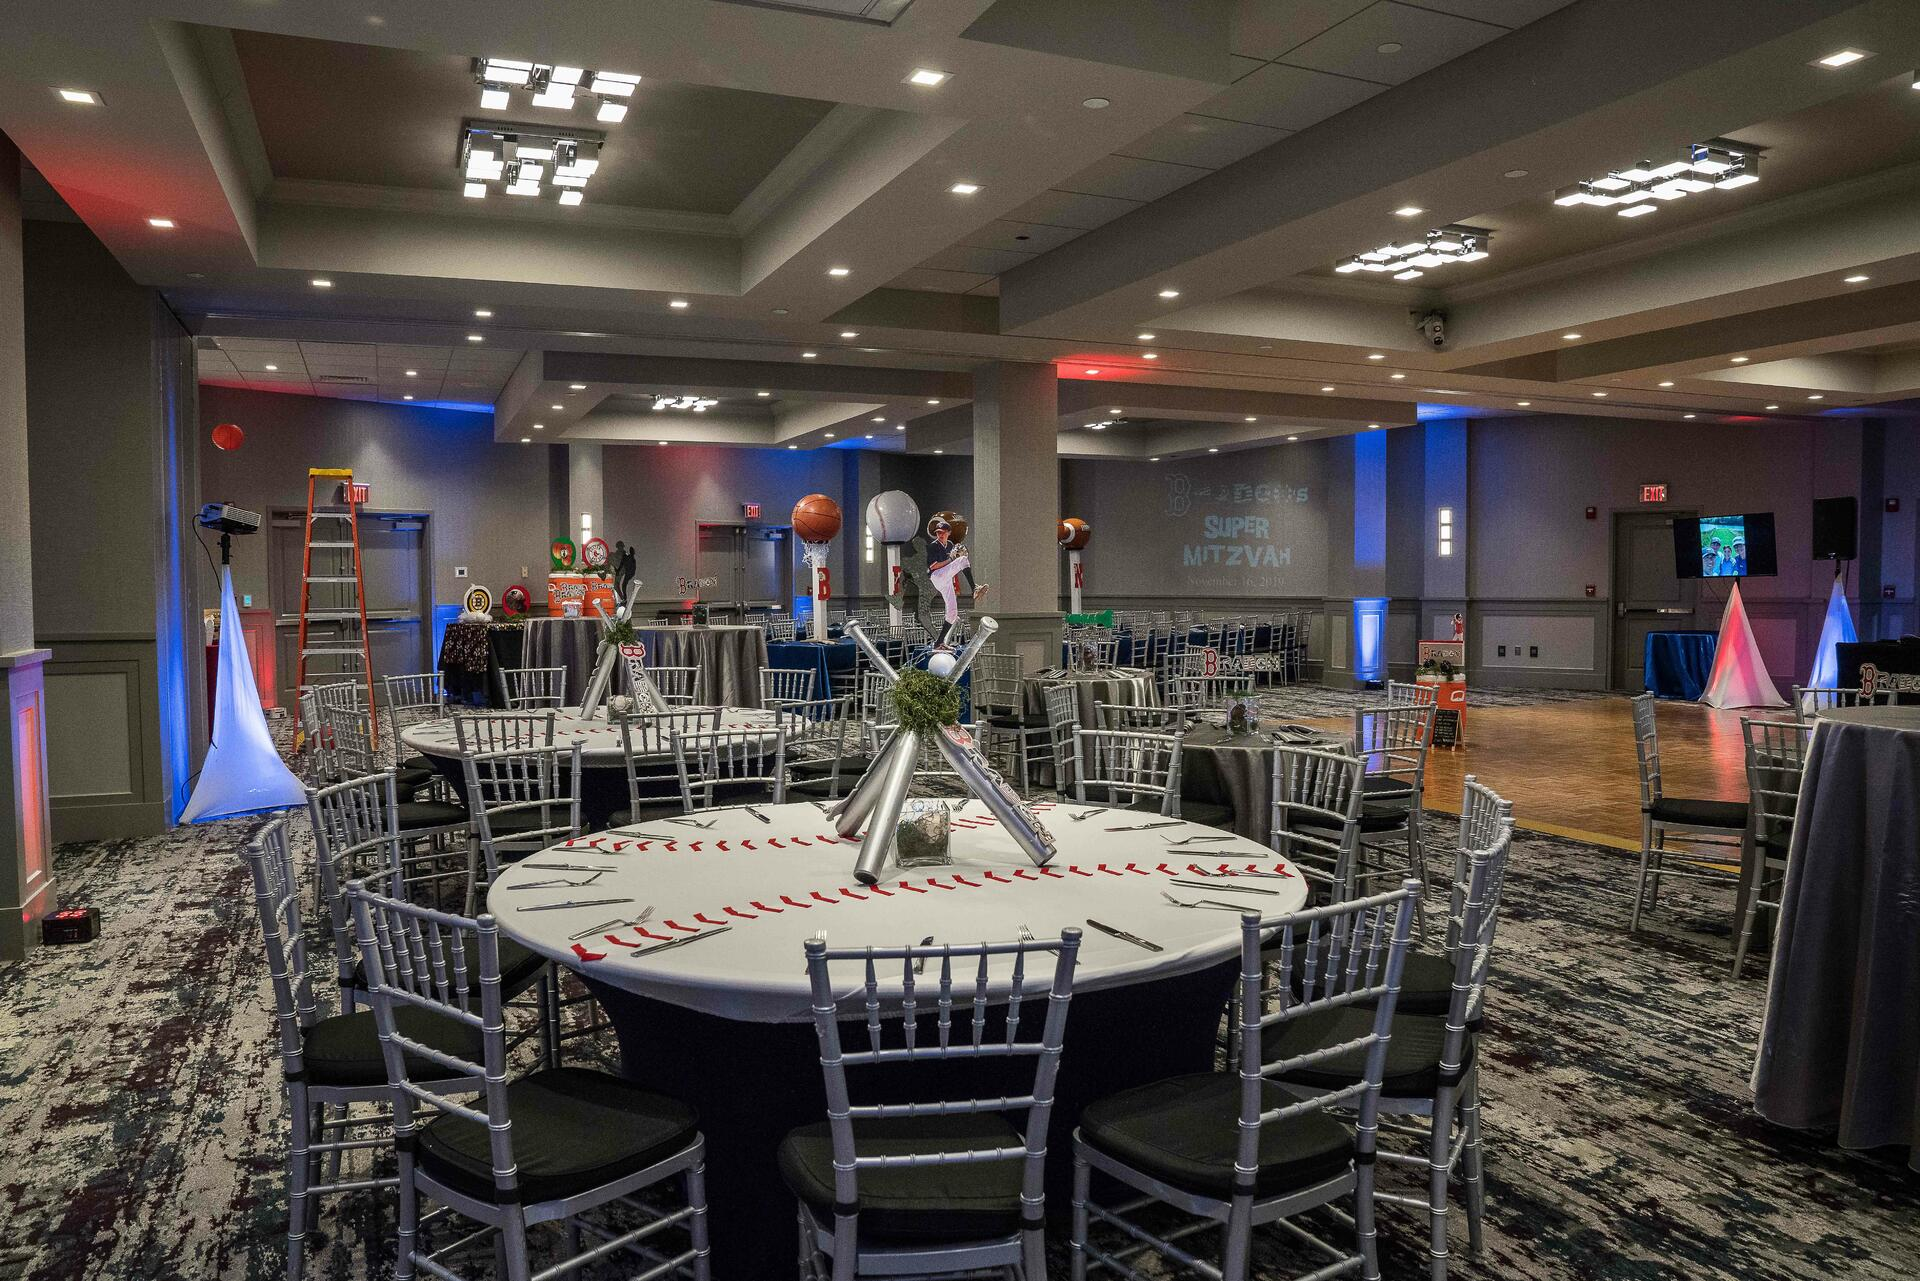 banquet room with baseball themed centerpieces on tables